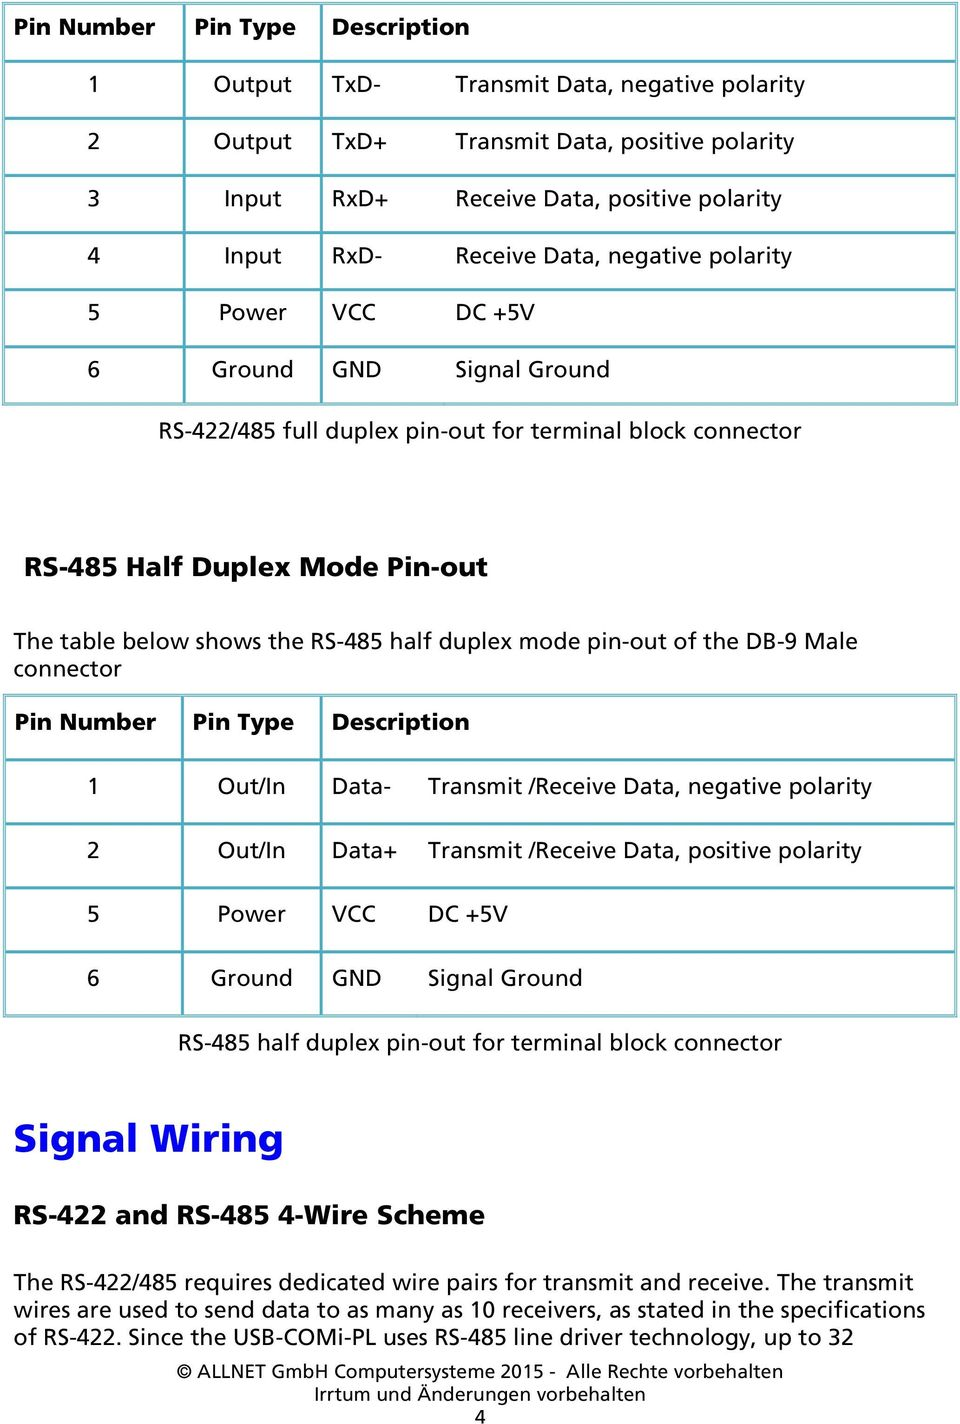 duplex mode pin-out of the DB-9 Male connector Pin Number Pin Type Description 1 Out/In Data- Transmit /Receive Data, negative polarity 2 Out/In Data+ Transmit /Receive Data, positive polarity 5